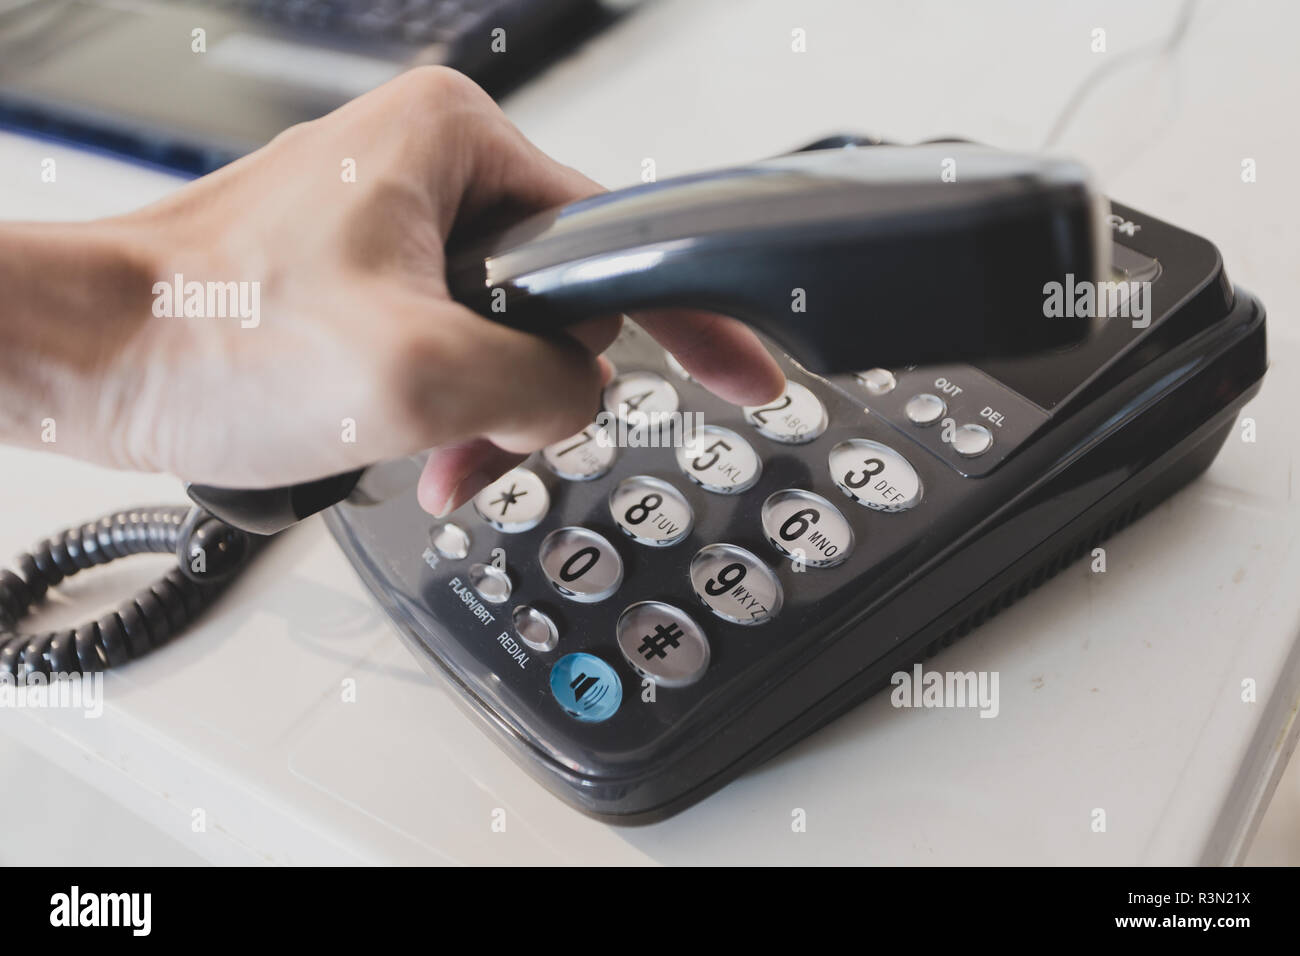 Closeup of male hand holding telephone receiver while dialing a phone number to make a call - Stock Image